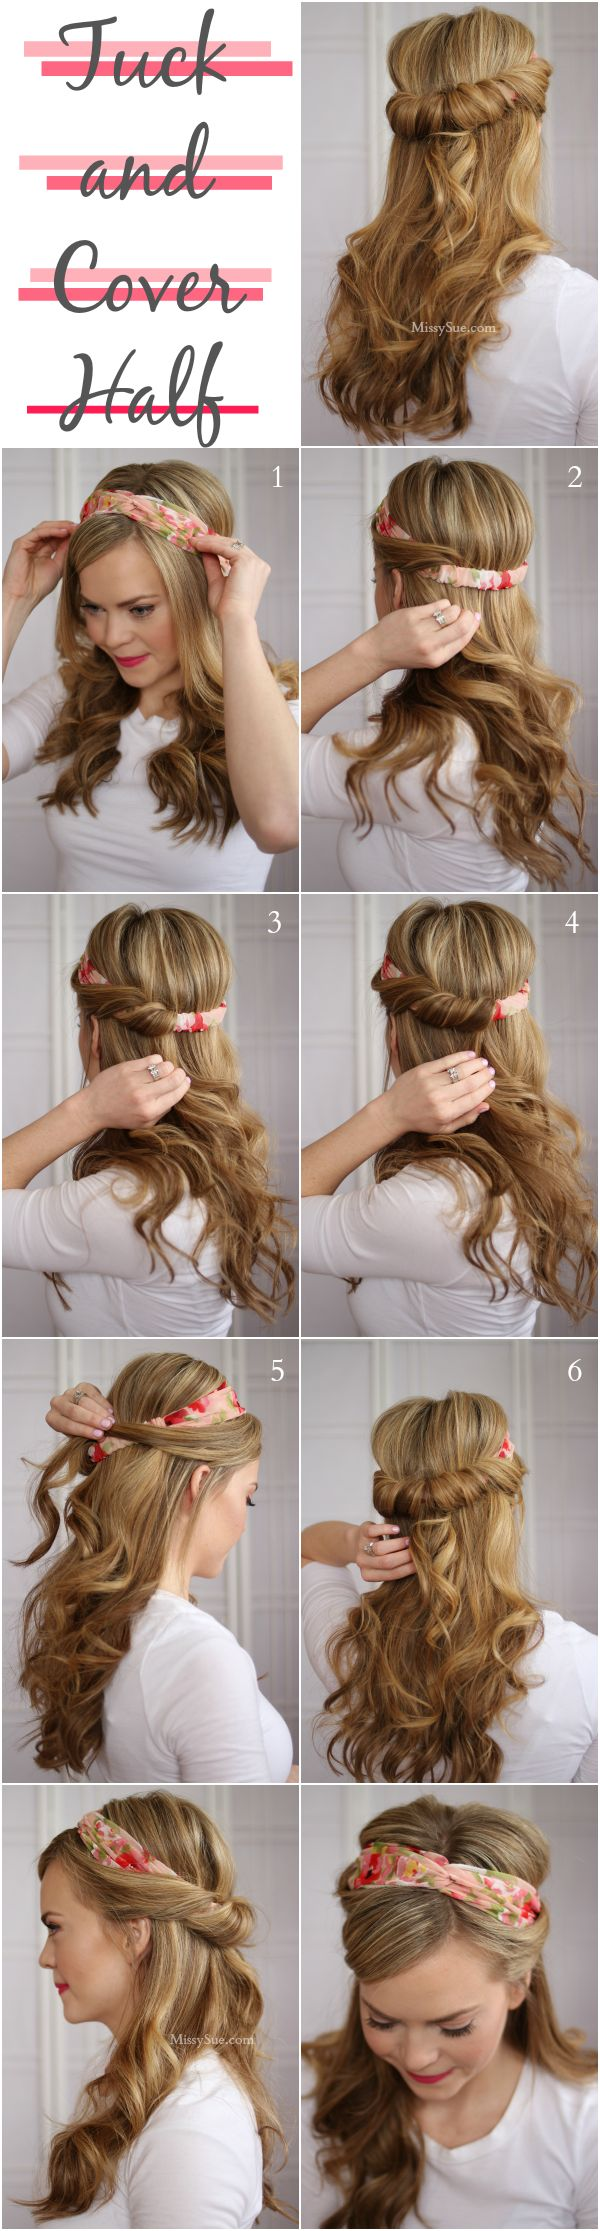 best new hairstyles images on pinterest hair dos bridal